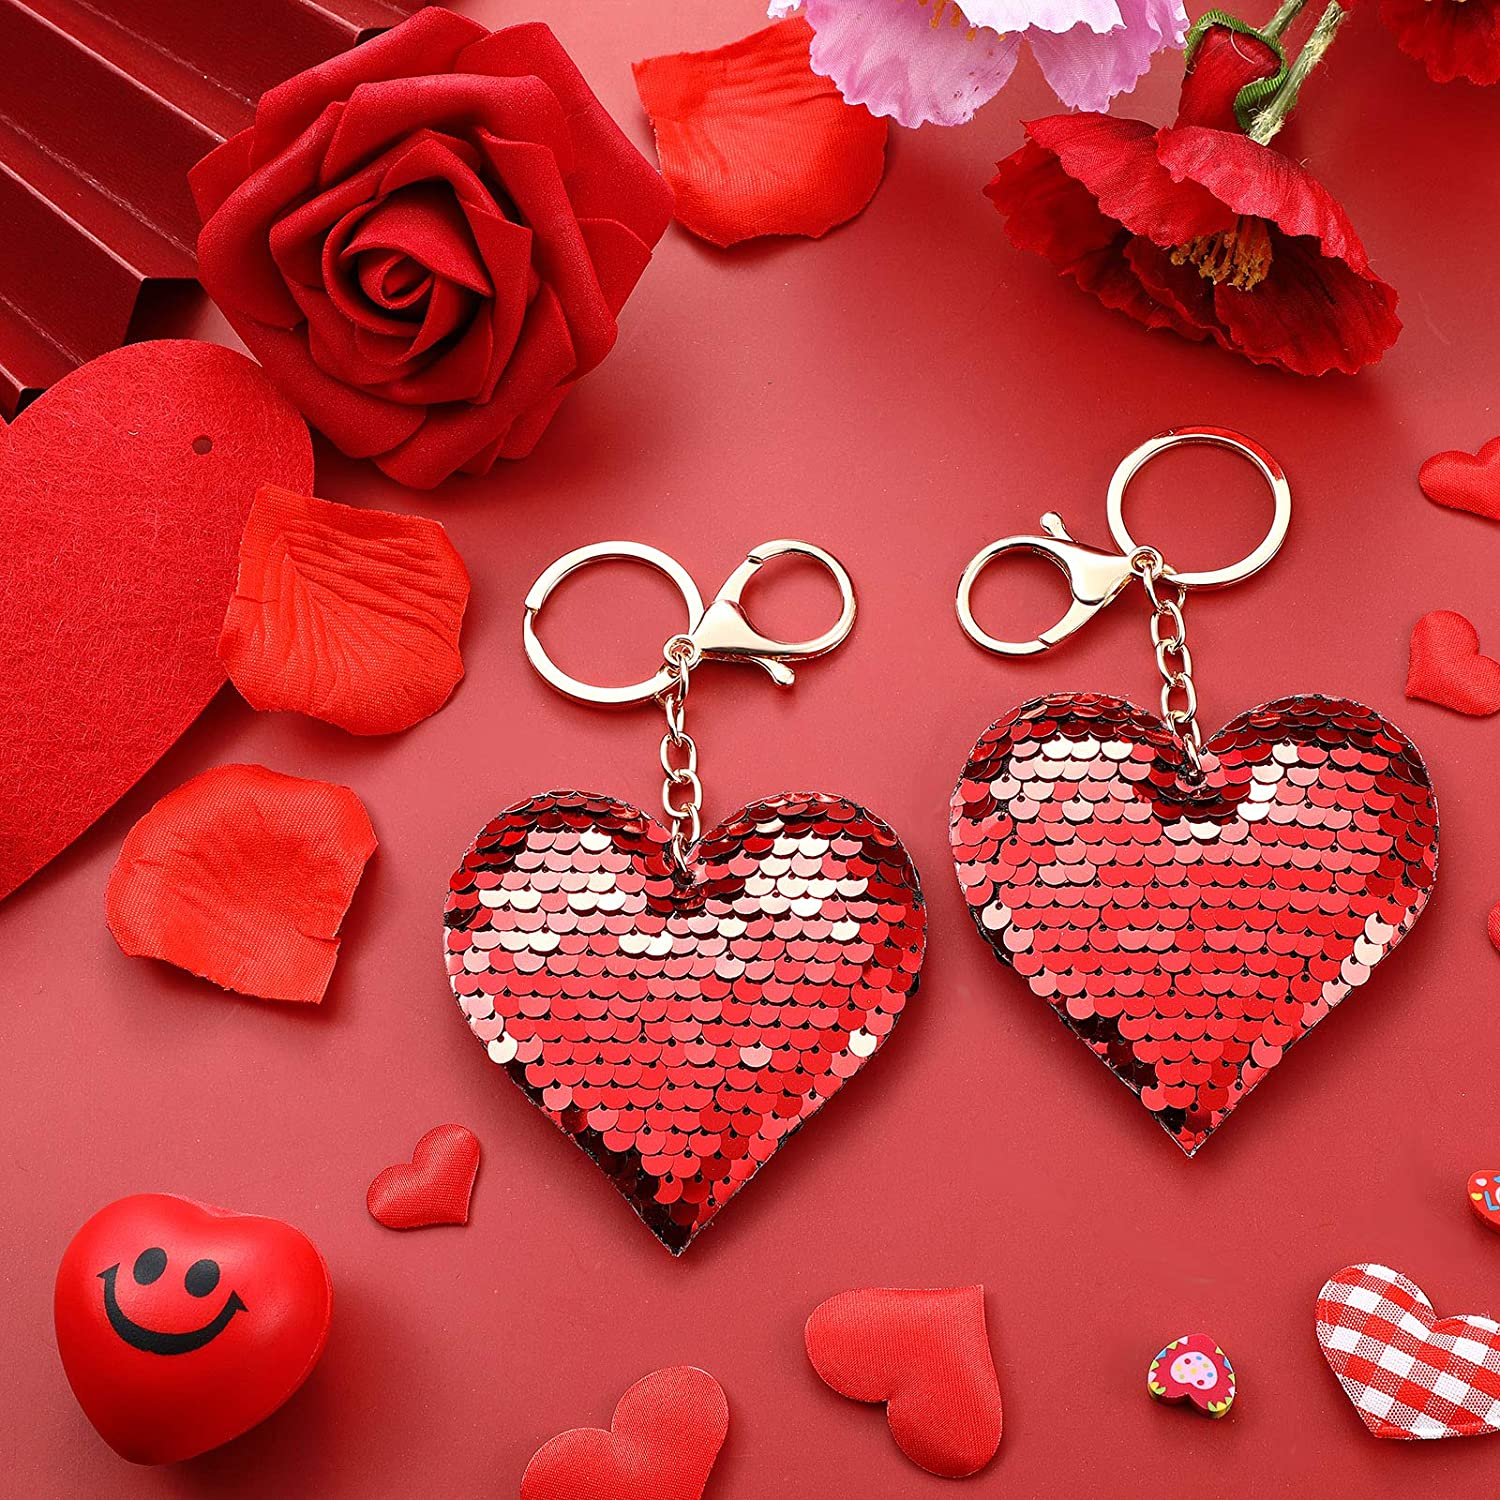 Rose Red 24 Pieces Valentine Heart Sequin Keychains Glitter Flip Key Rings Double-Sided Heart Shape Key Chains for Valentines Day Party Favors Backpack Accessories